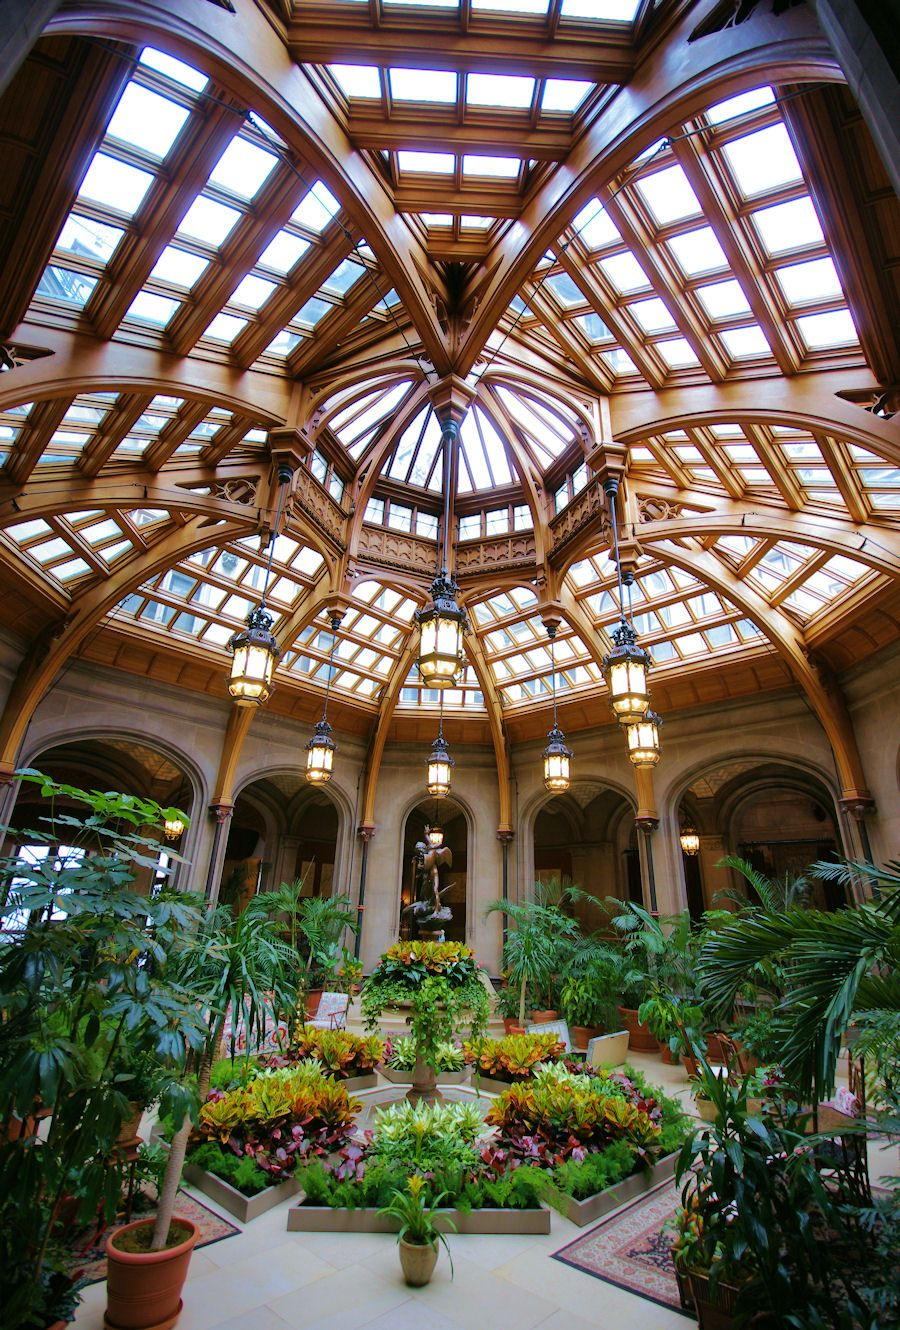 winter garden inside biltmorehouse in asheville north carolina